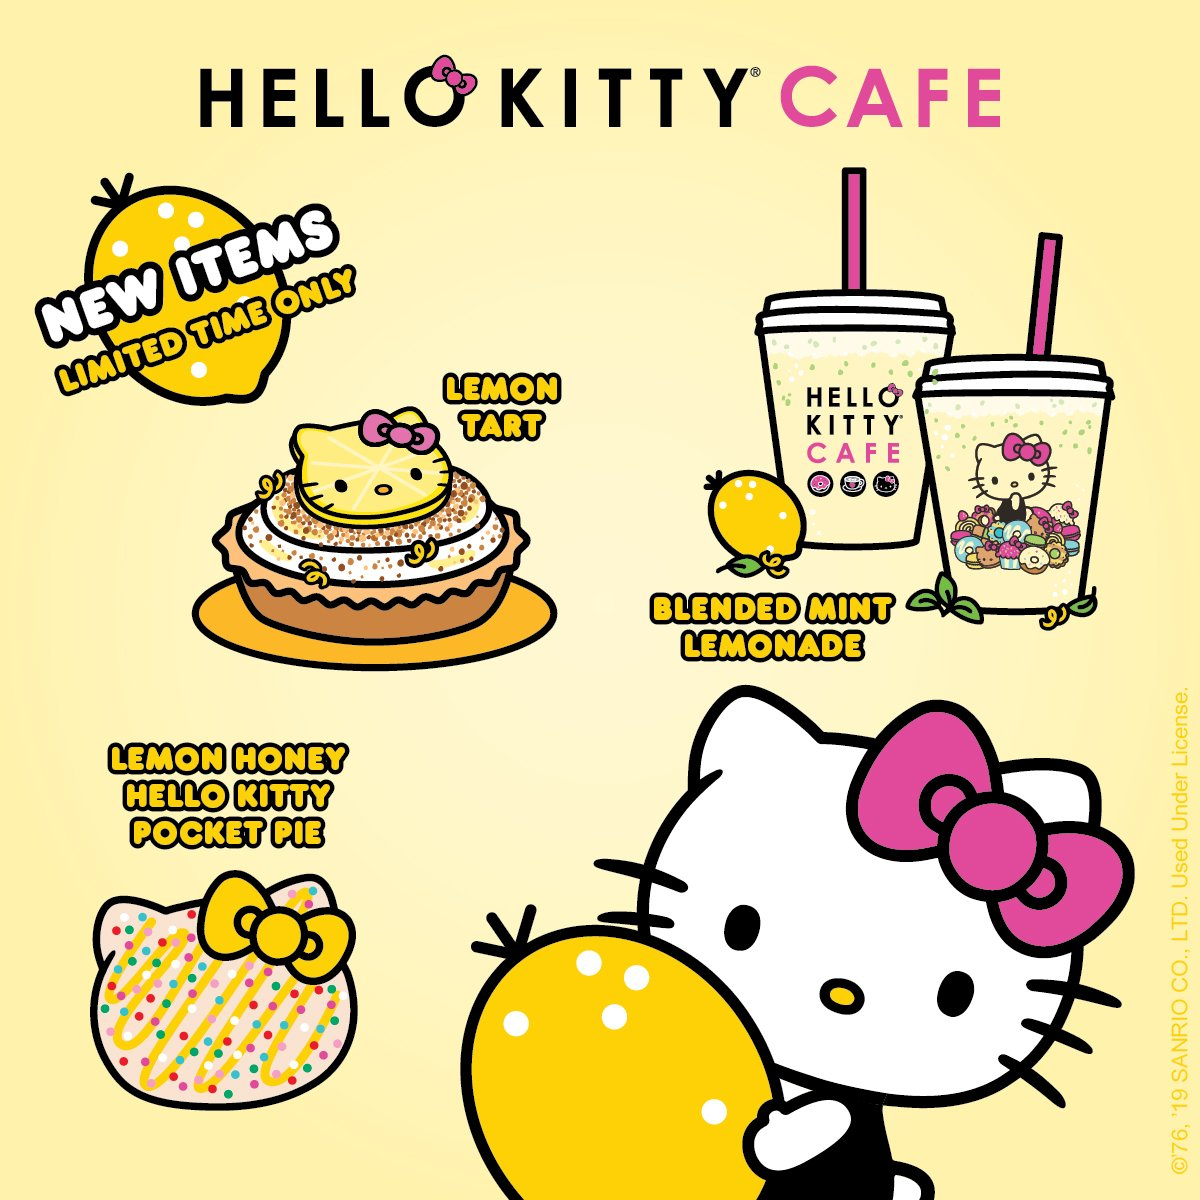 Super sweet news! Our new lemony sweet menu is squeezing through on Friday at all Hello kitty Cafe locations #comingsoon<br>http://pic.twitter.com/eVxJgeACee